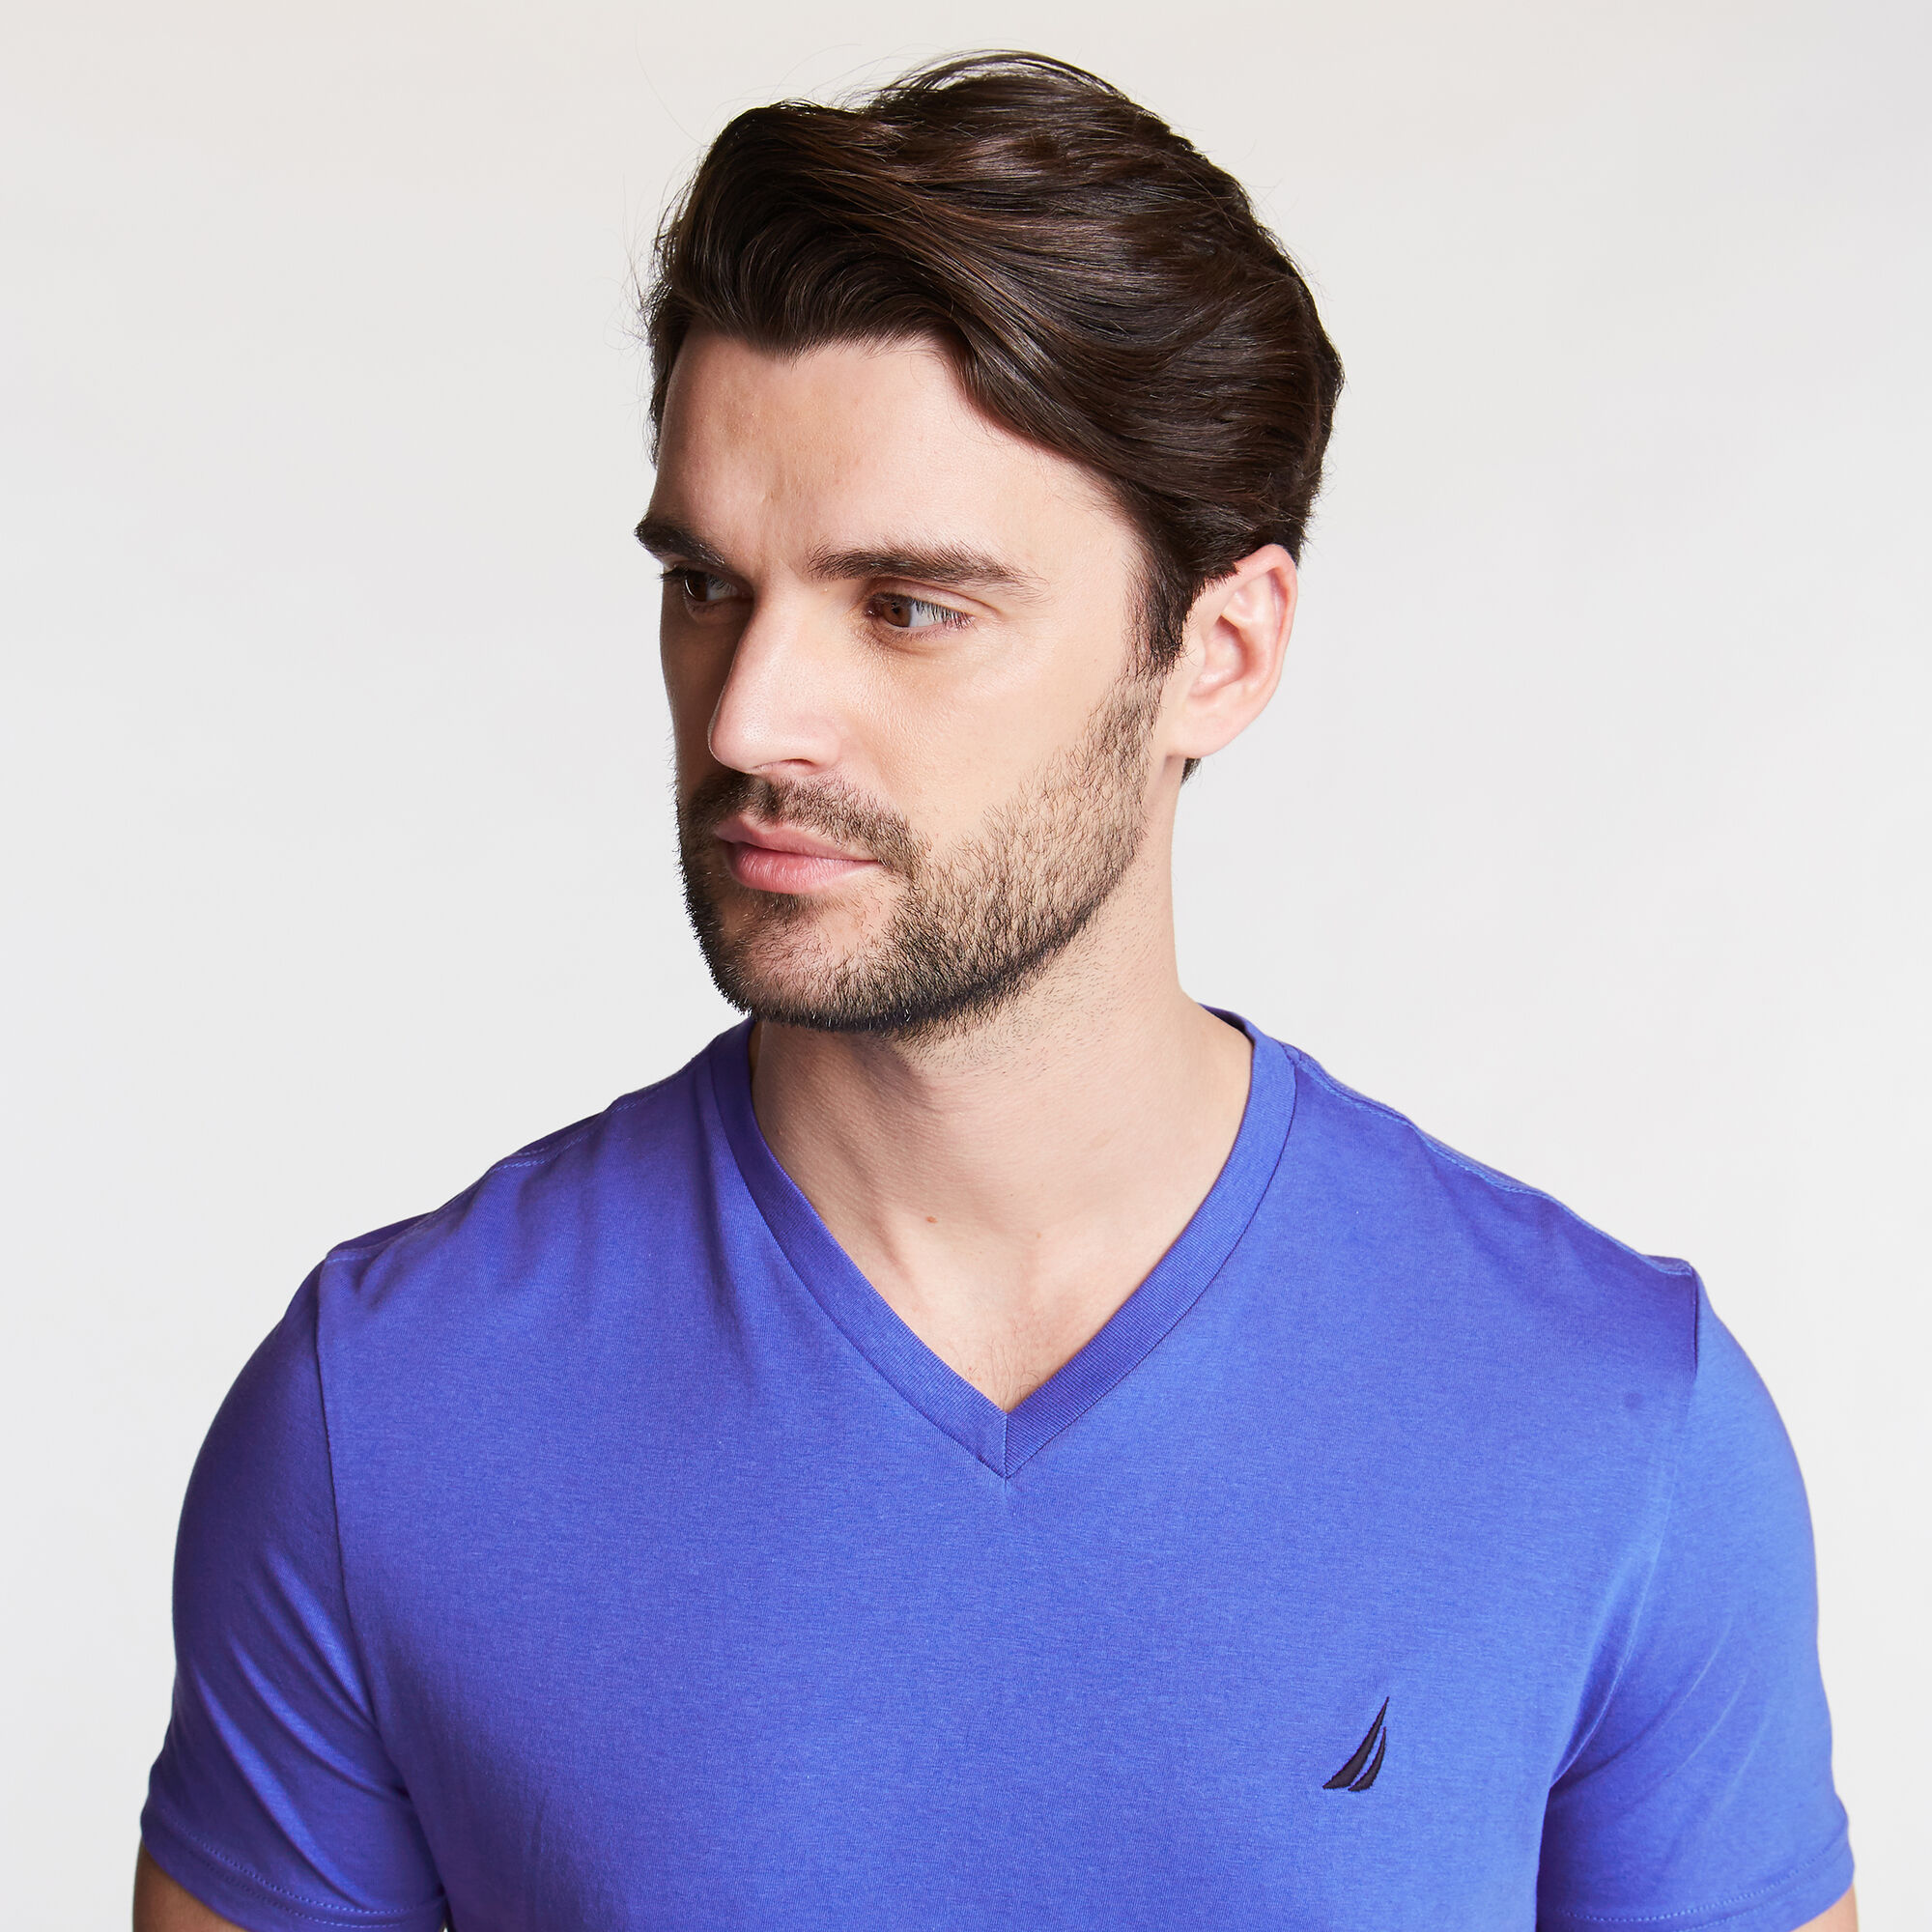 Nautica-Mens-V-Neck-Short-Sleeve-T-Shirt thumbnail 7